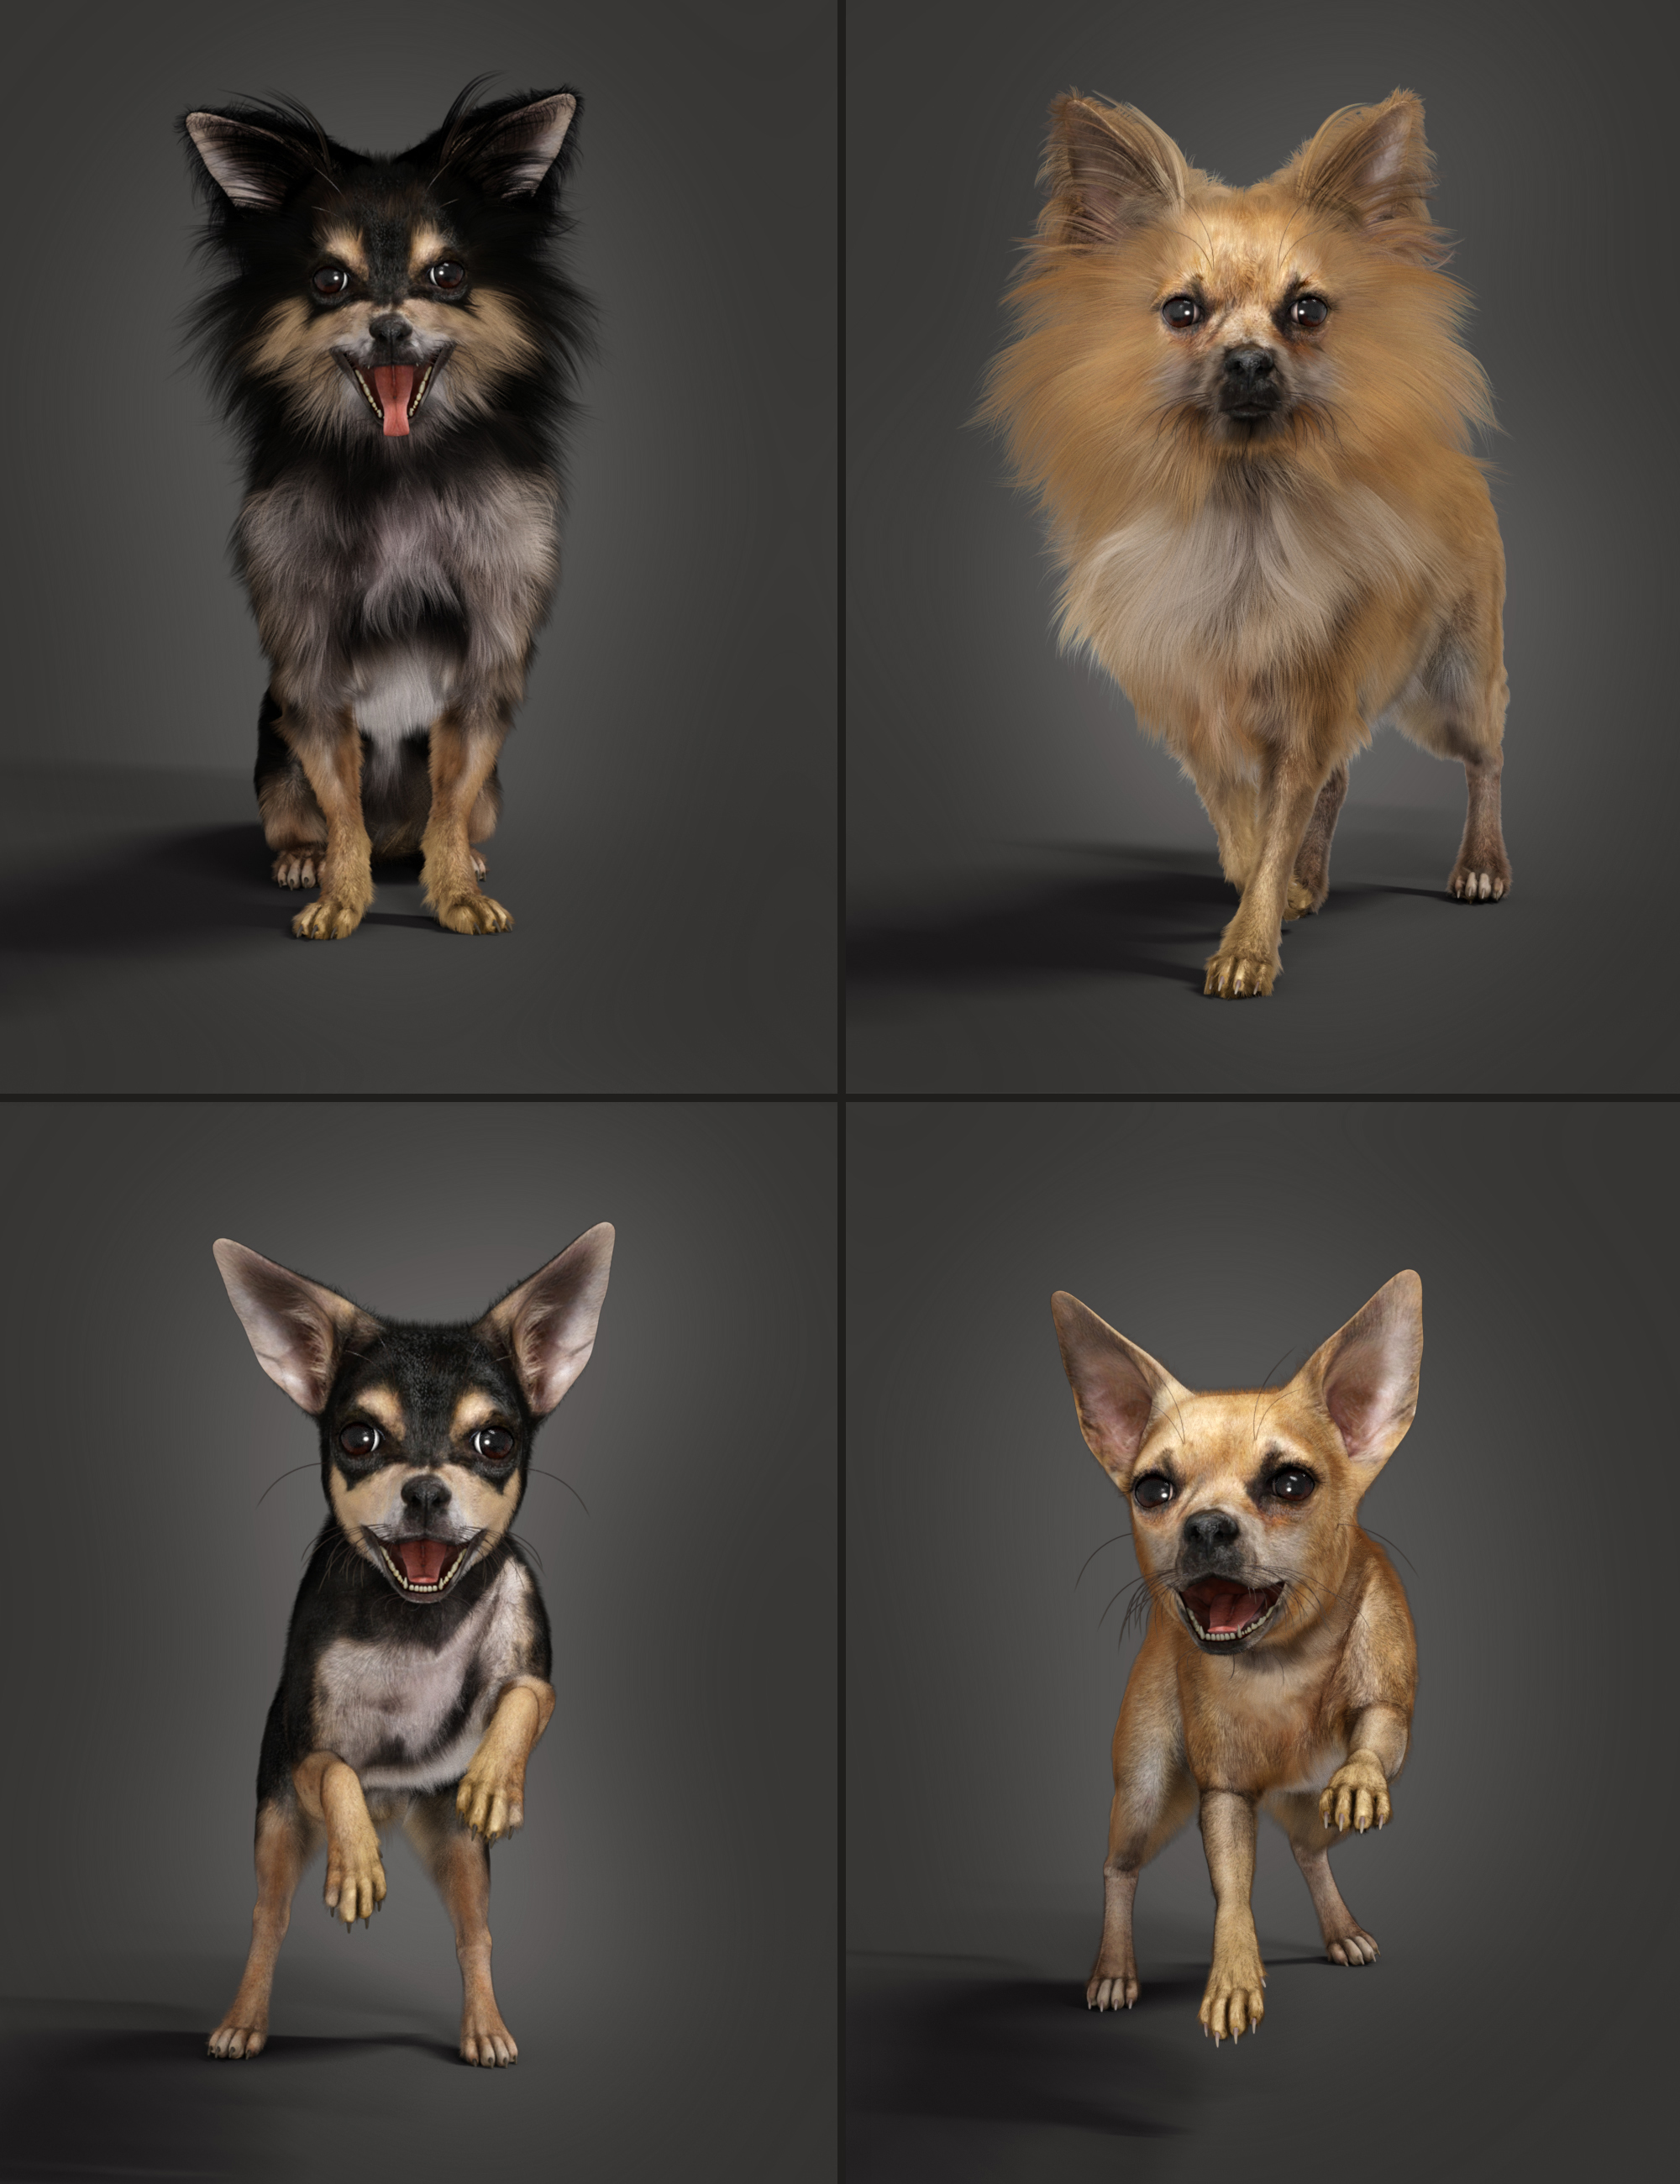 Chihuahua for Daz Dog 8: Penelope and Zorro Add-on by: Alessandro_AMLMX3D, 3D Models by Daz 3D